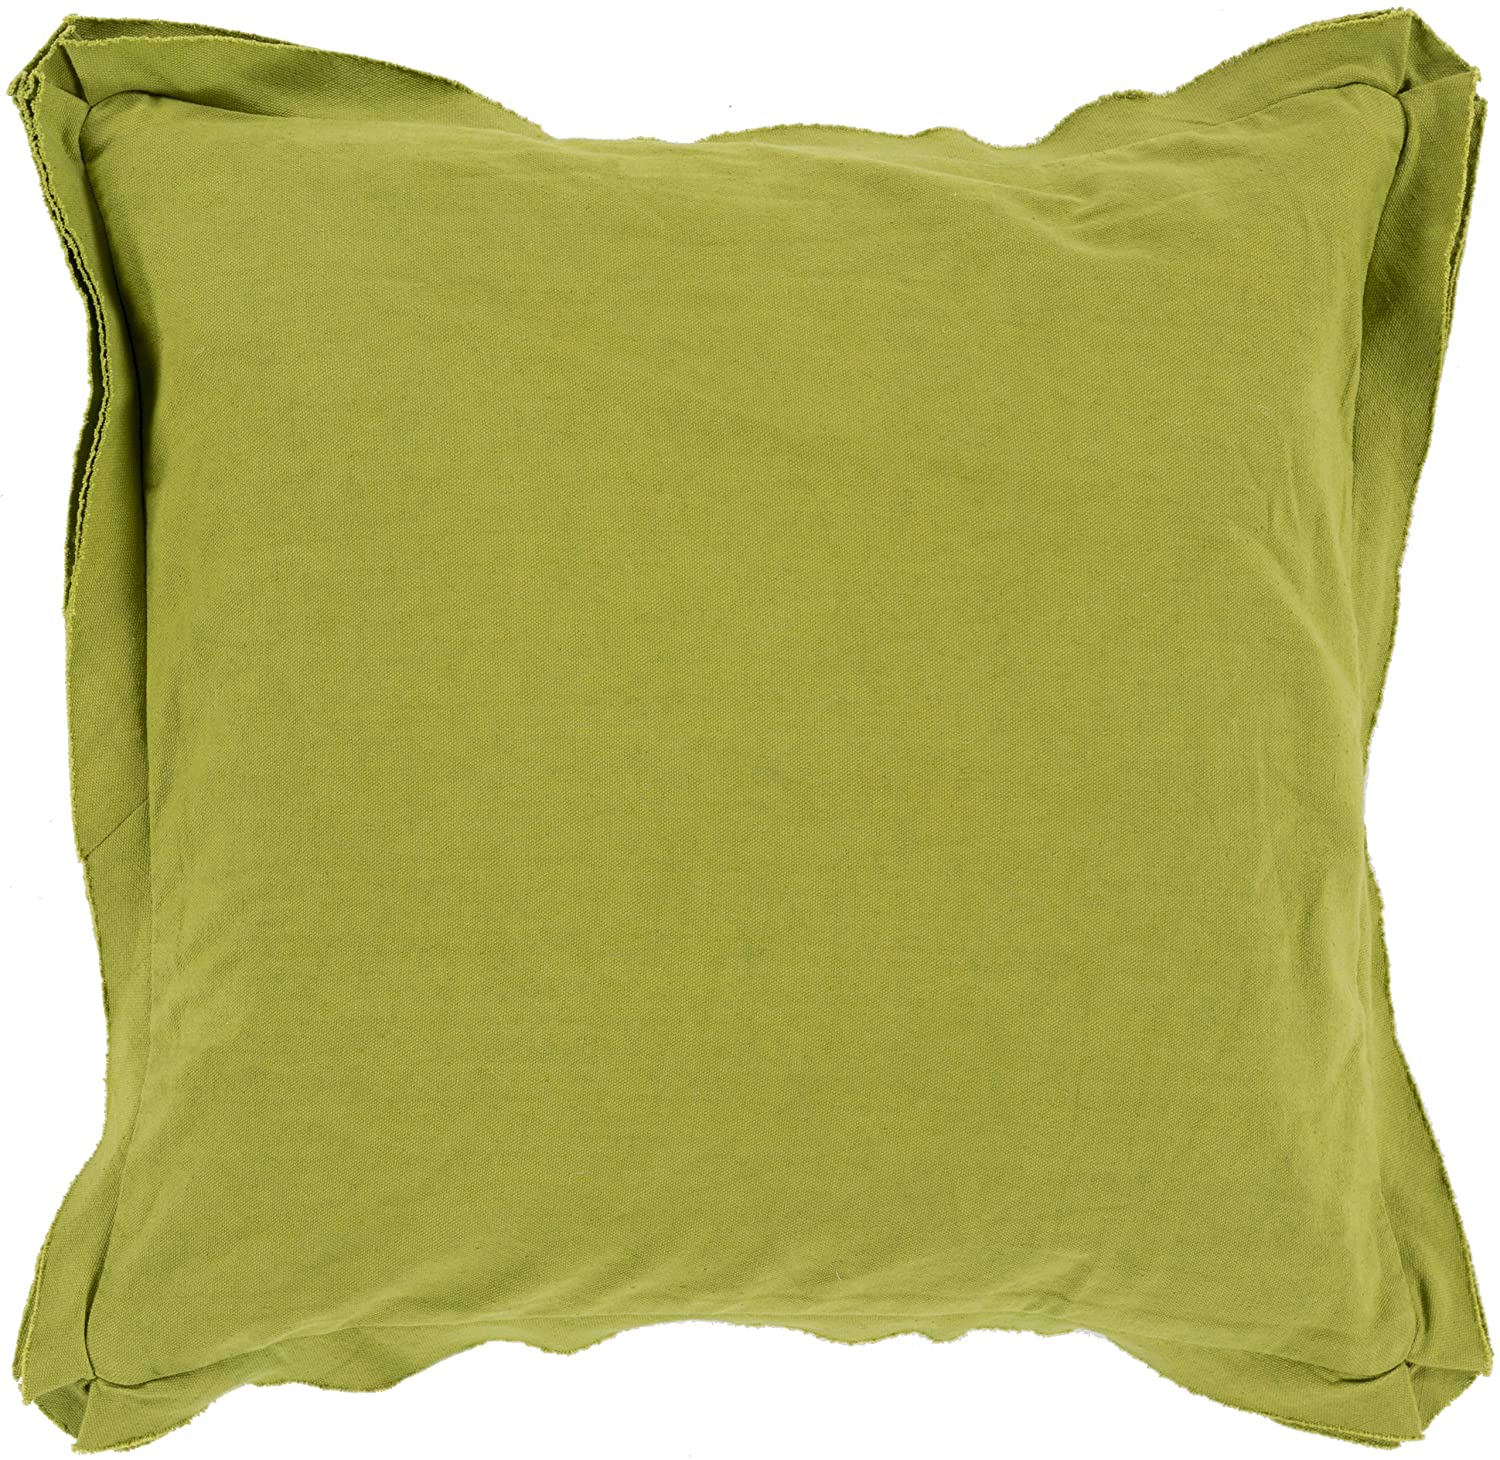 Surya TF006-1818P Synthetic Fill Pillow, 18-Inch by 18-Inch, Olive